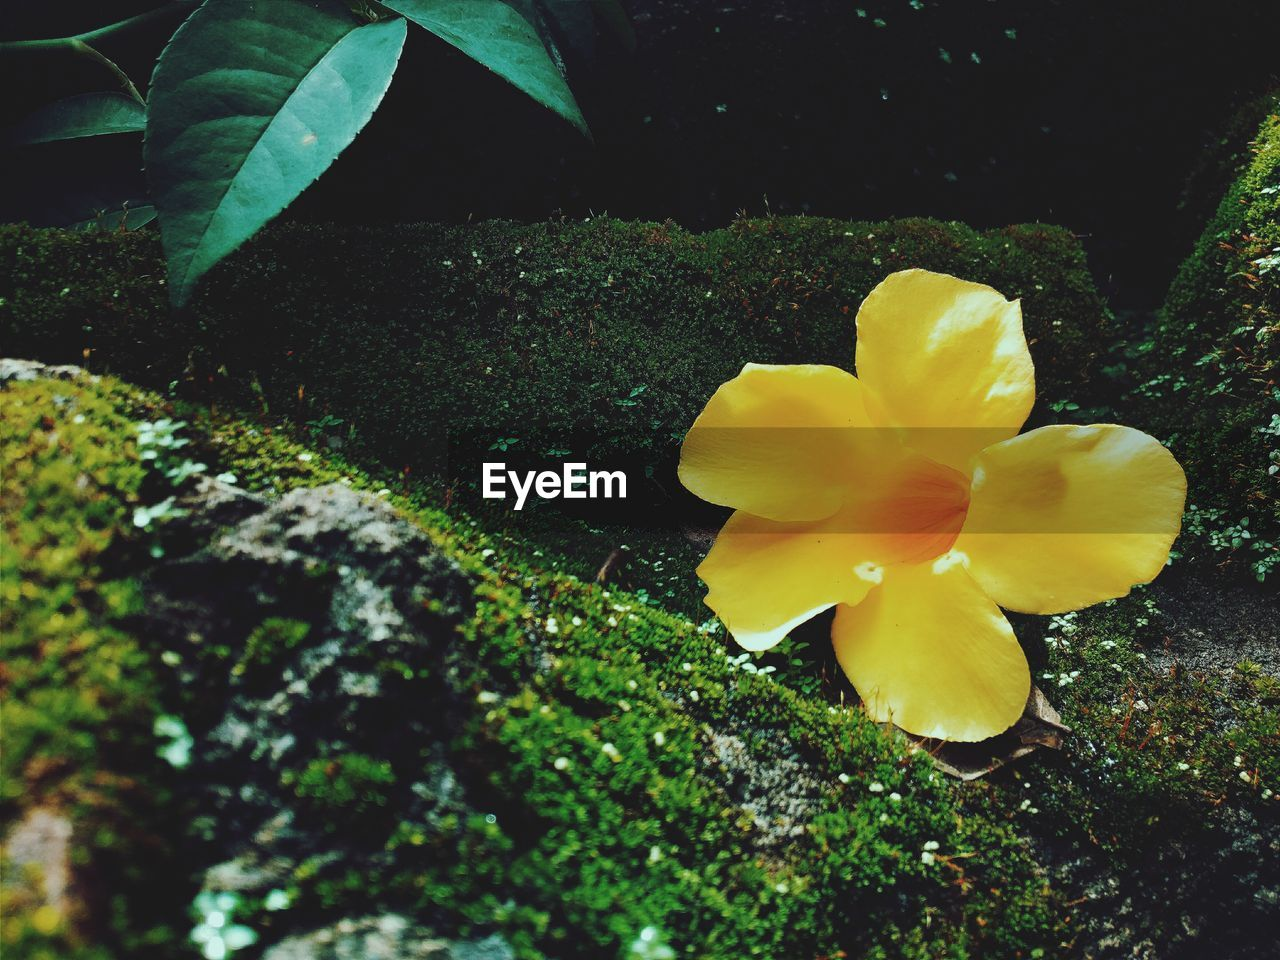 flower, petal, fragility, beauty in nature, yellow, nature, flower head, growth, freshness, plant, outdoors, no people, day, close-up, blooming, frangipani, leaf, crocus